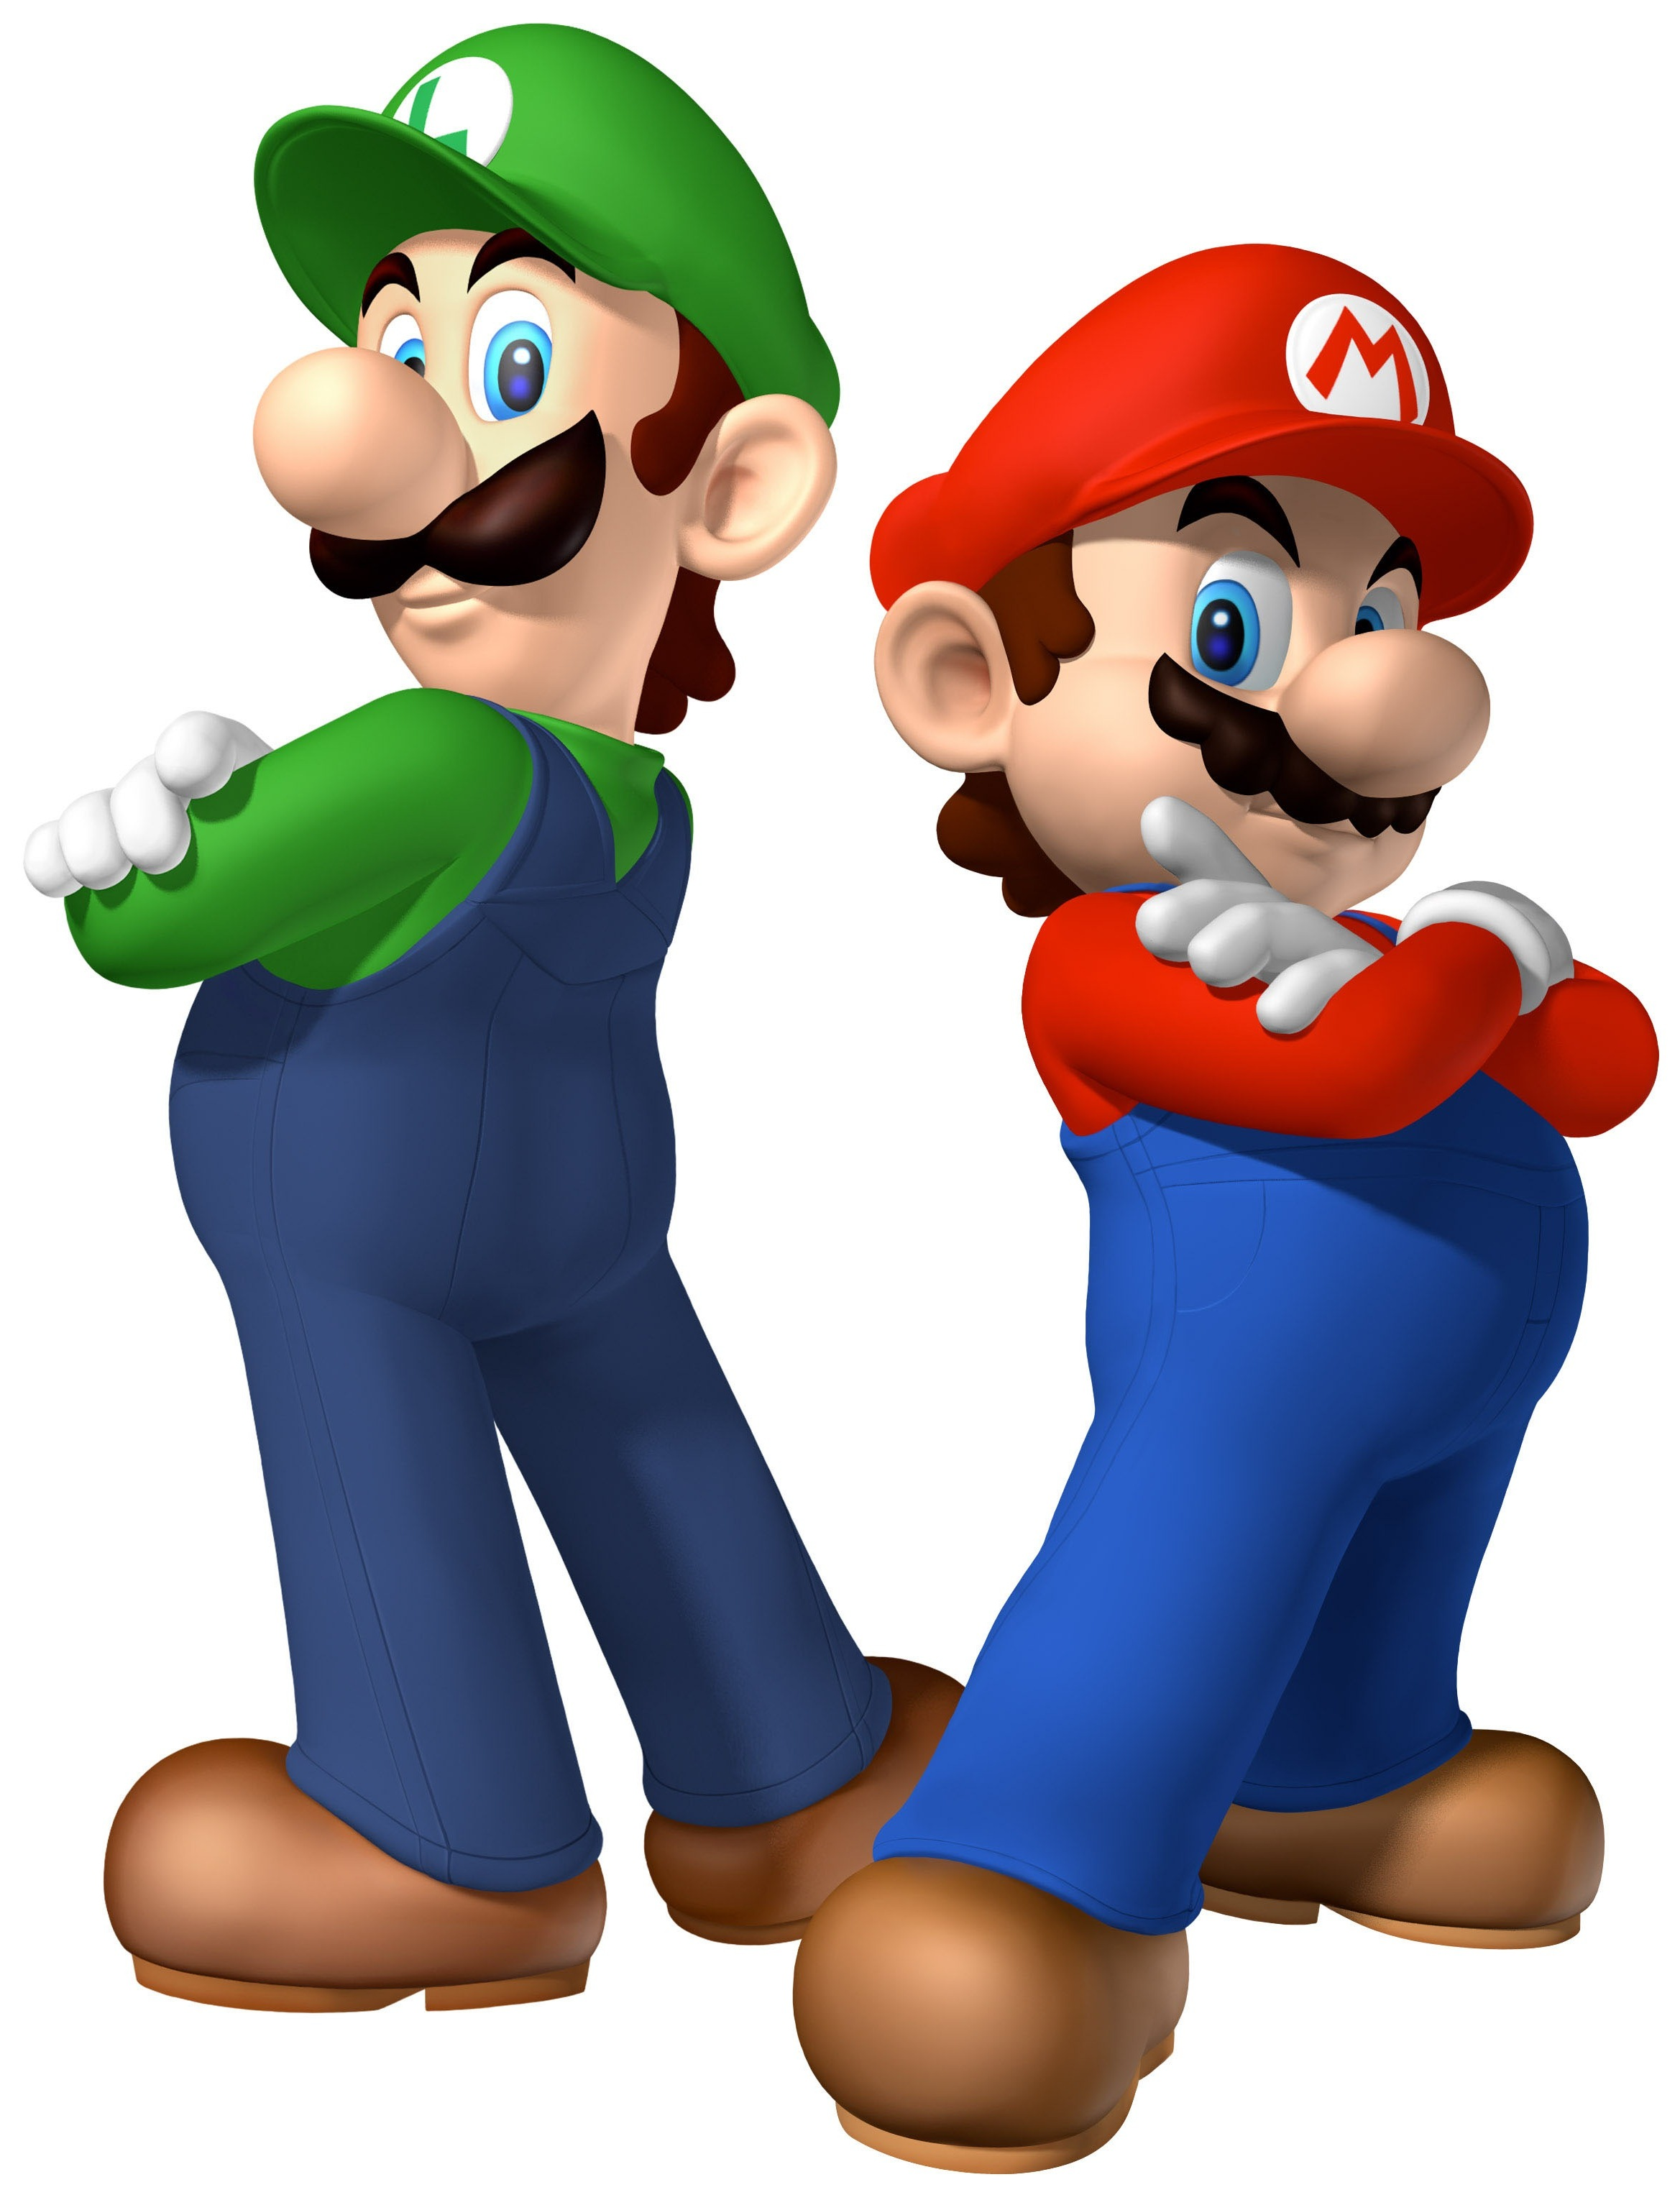 Mario vs Luigi   DReag...